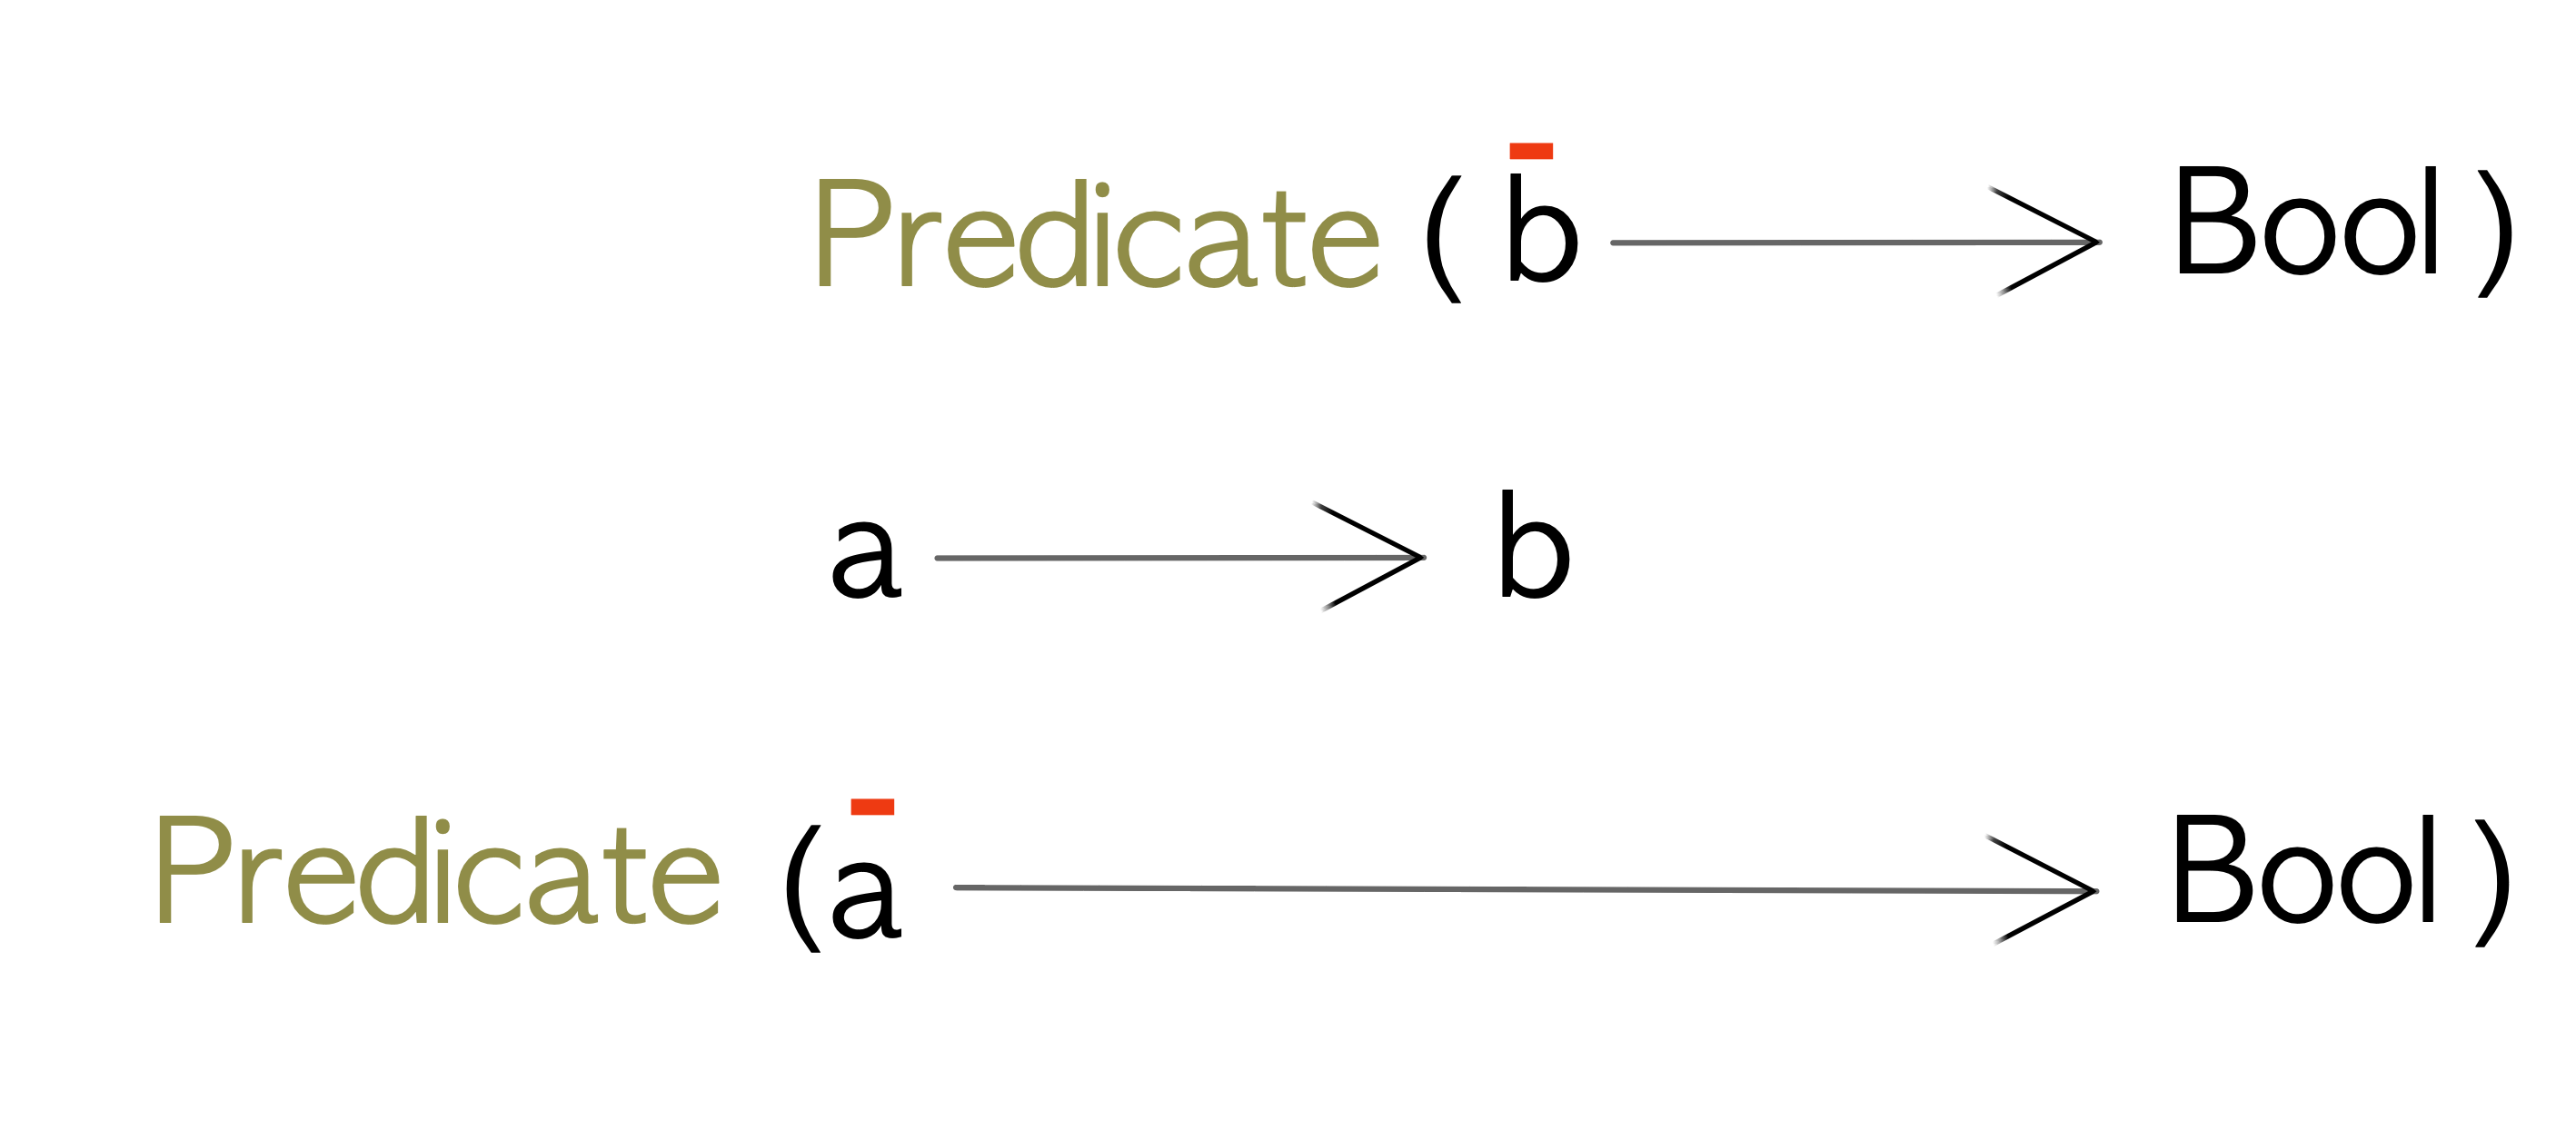 contramap on Predicate